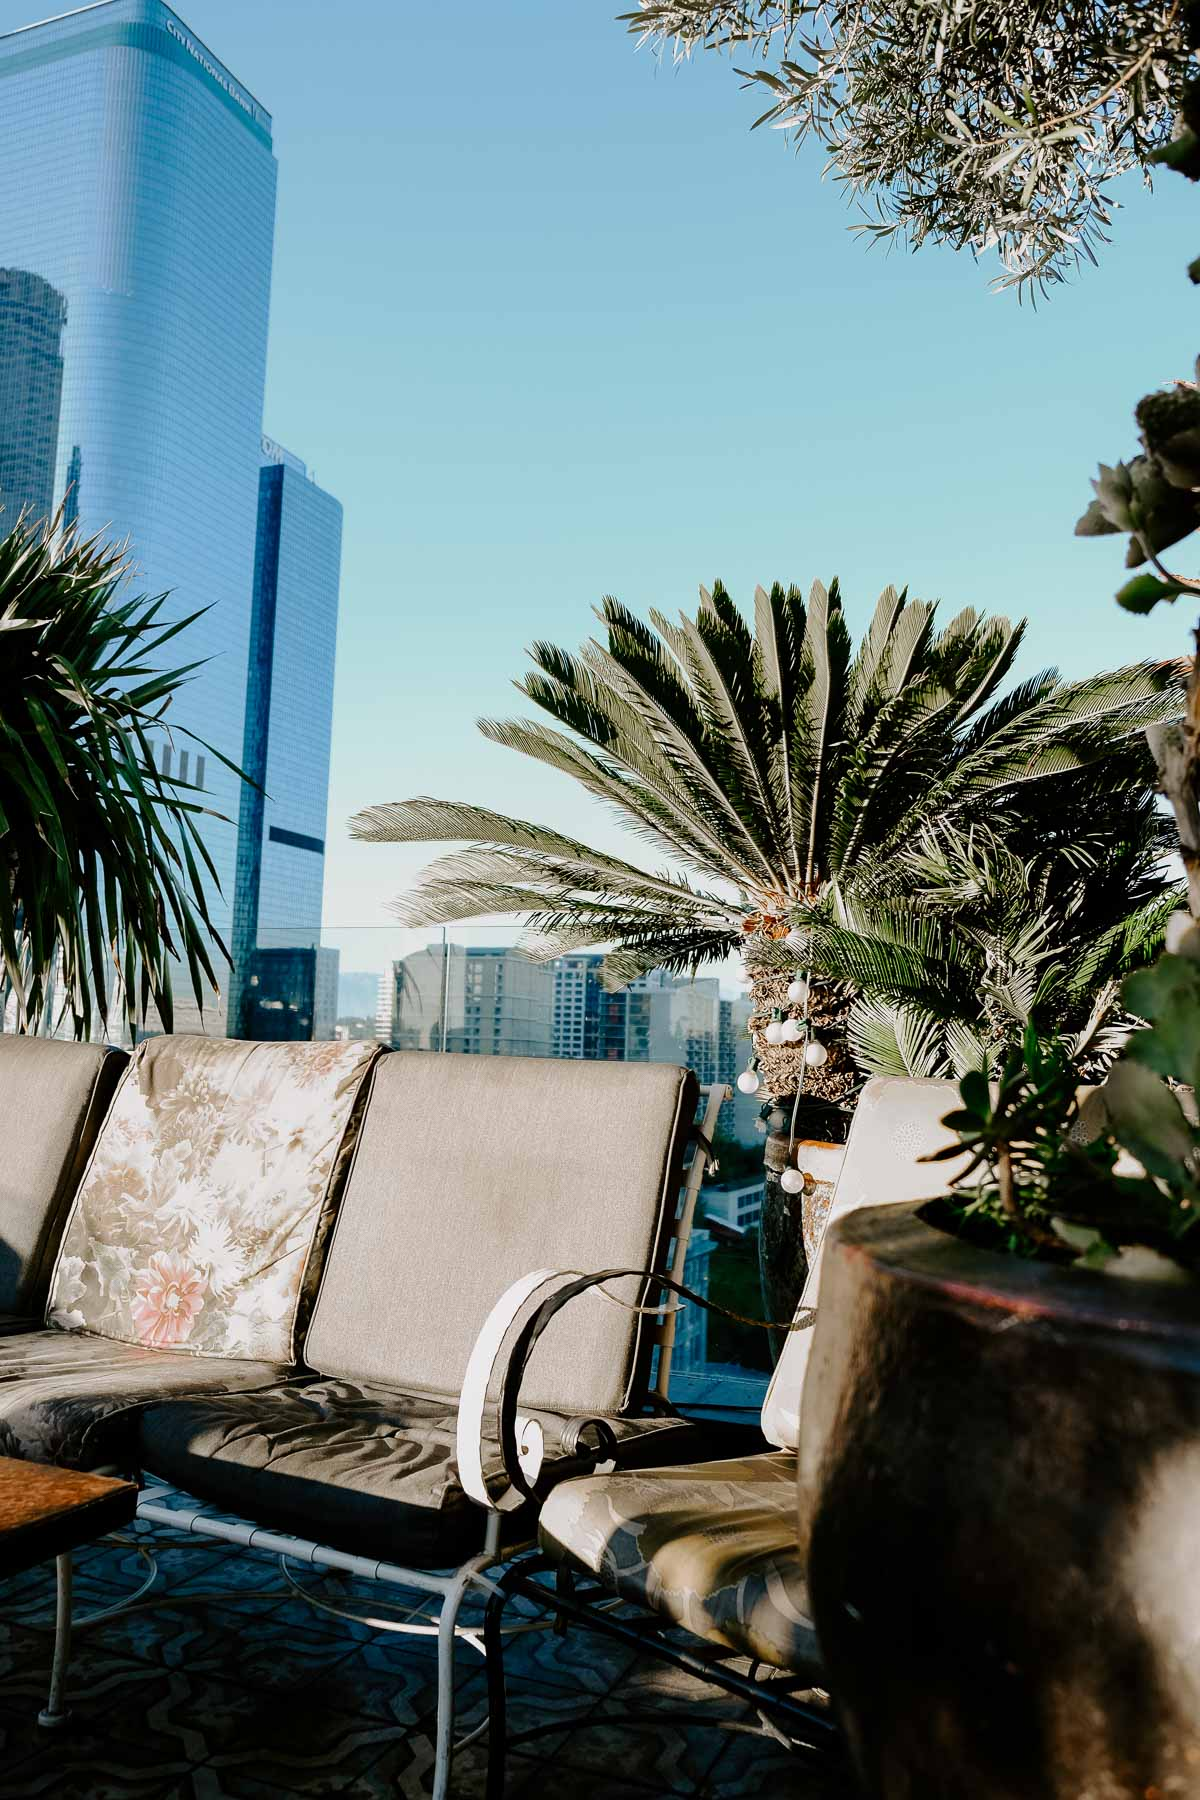 Planning a girl's trip to LA and need ideas on what to do? This chic girl's guide to LA has ideas on what to do, where to eat, where to shop, and where to stay, just to name a few! Perch rooftop bar is a hot spot.